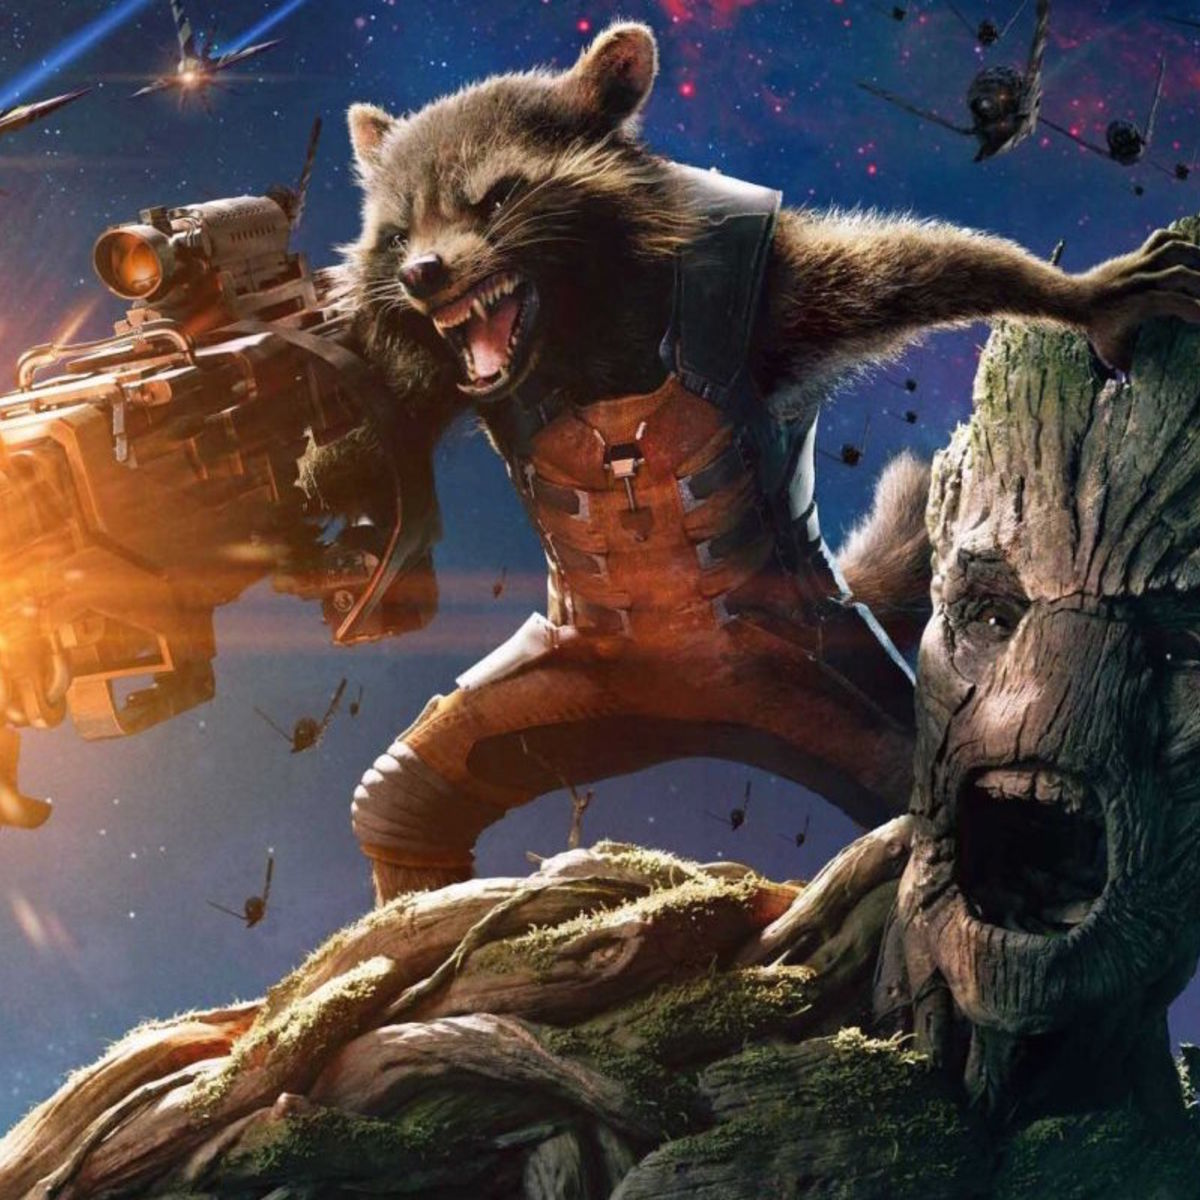 guardians-of-the-galaxy-groot-rocket-2.jpg